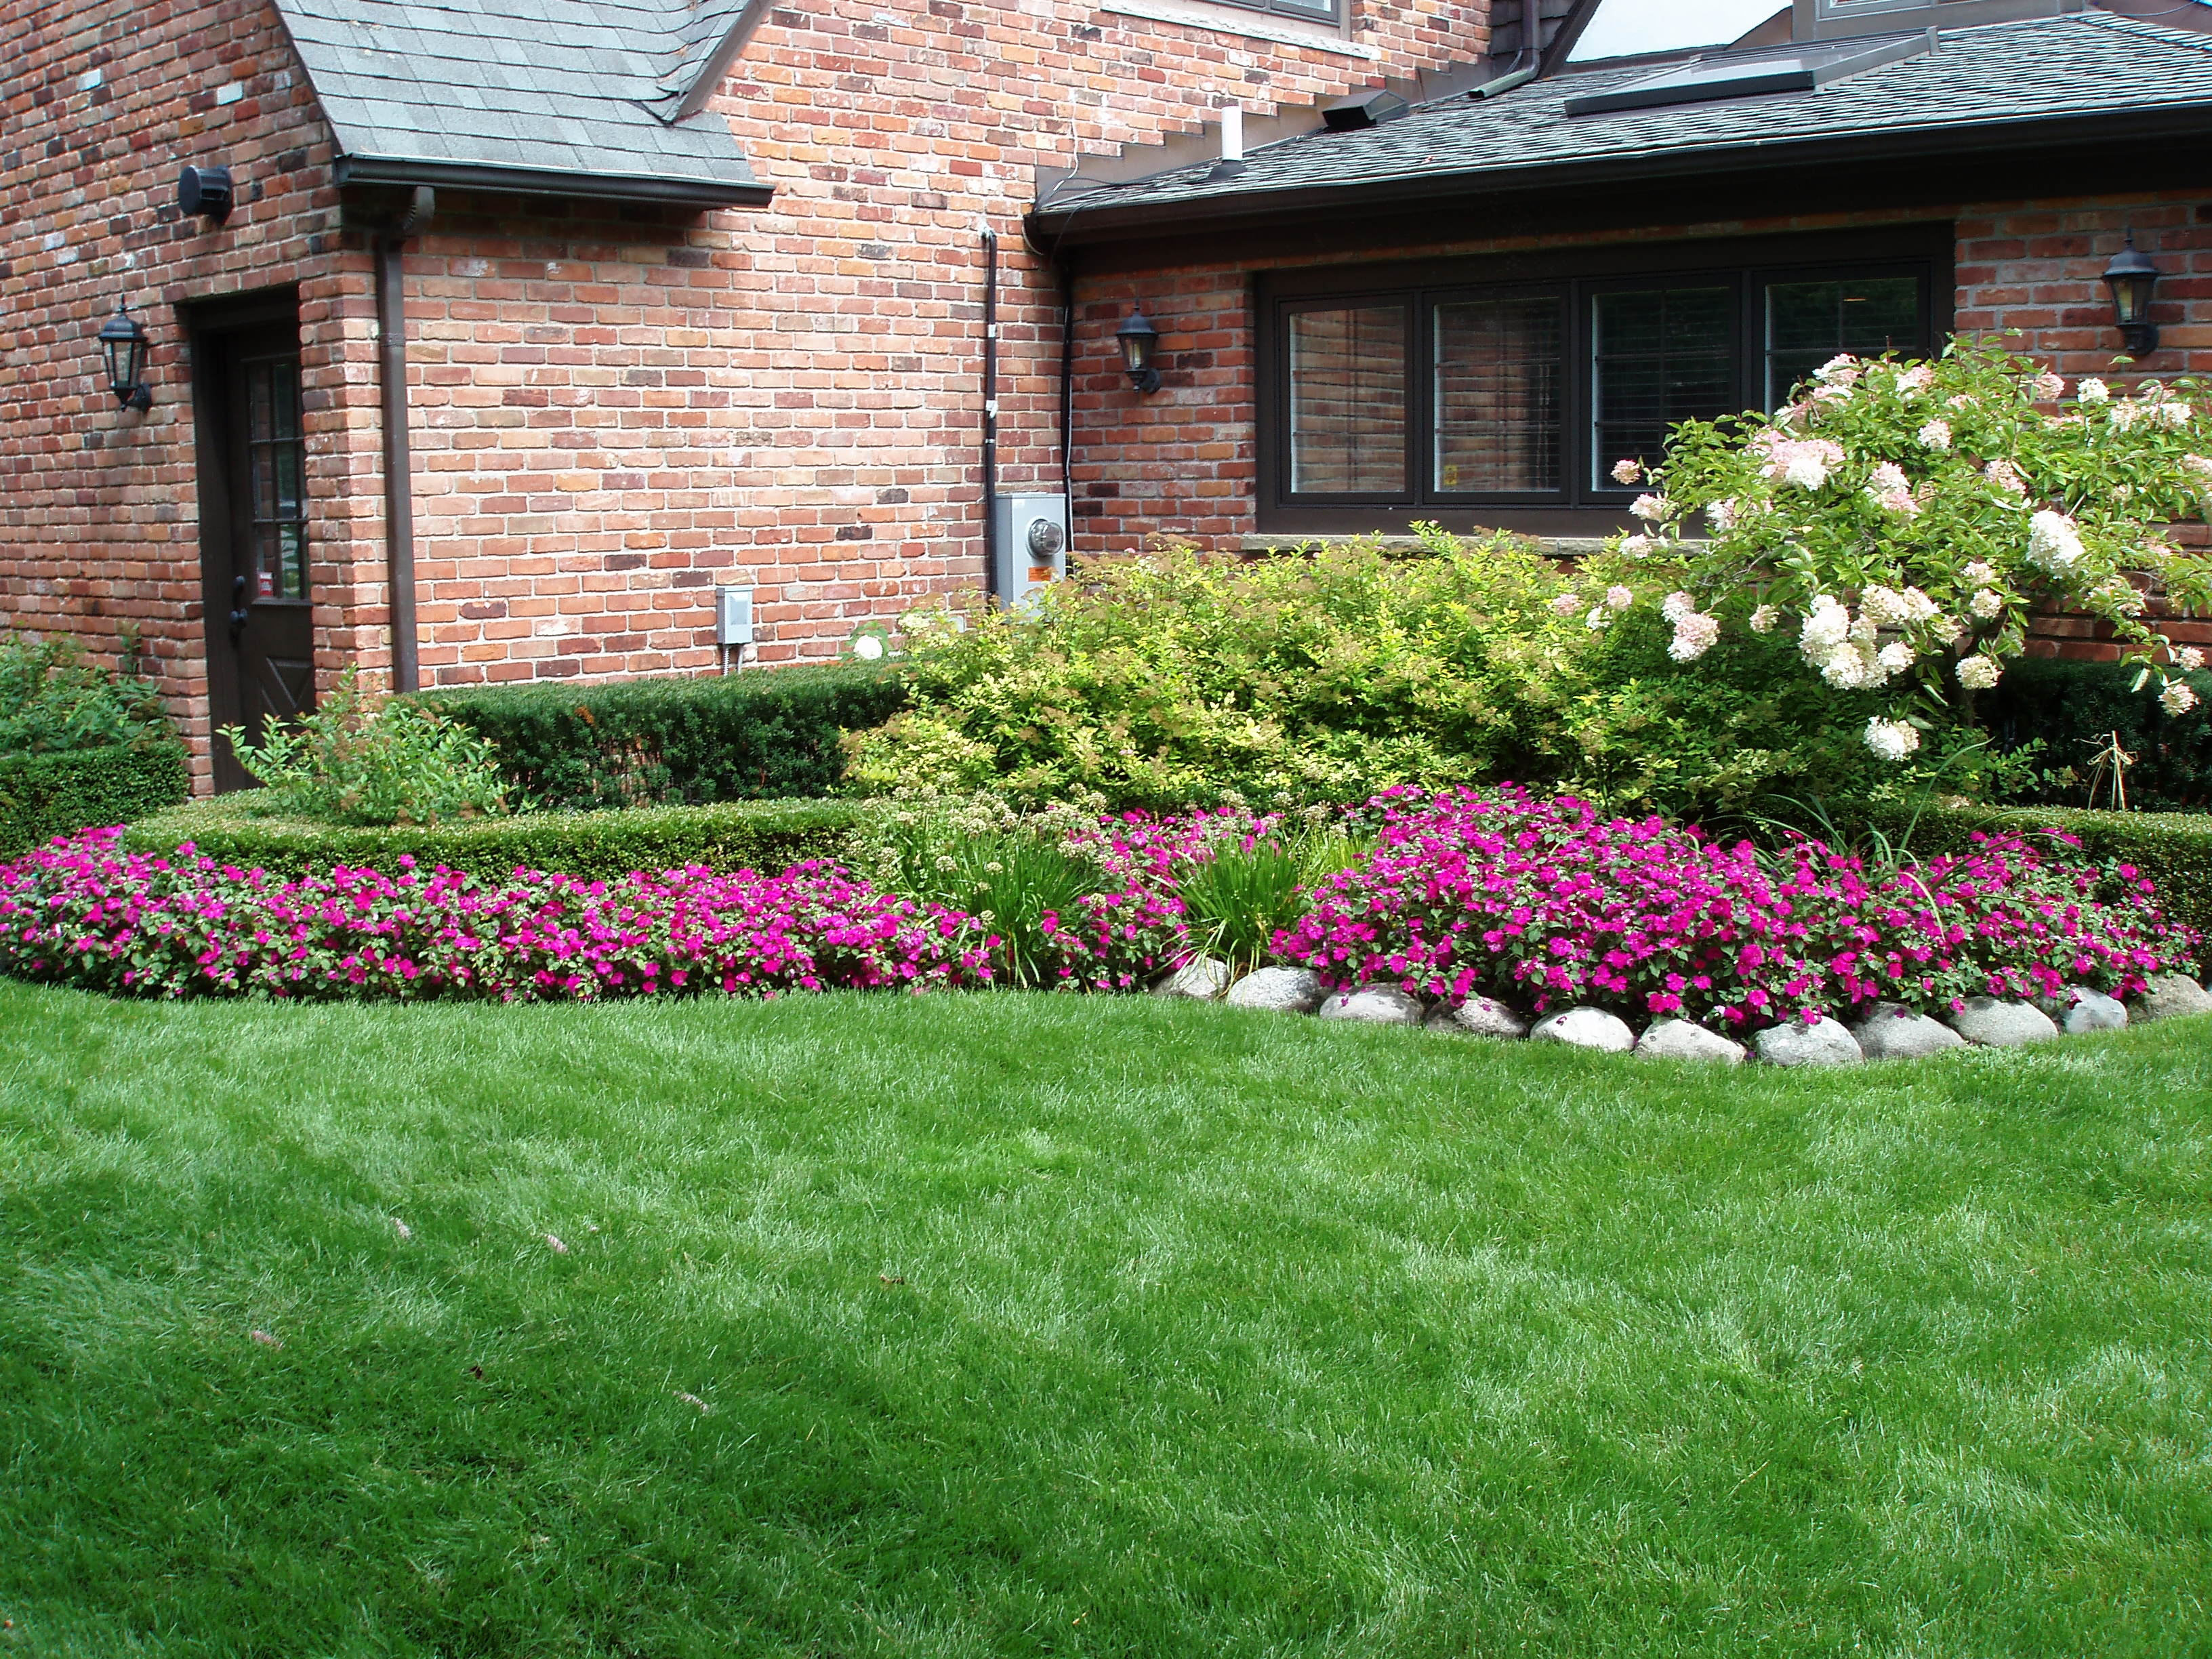 Landscaping total lawn care inc full lawn maintenance for Lawn landscaping ideas